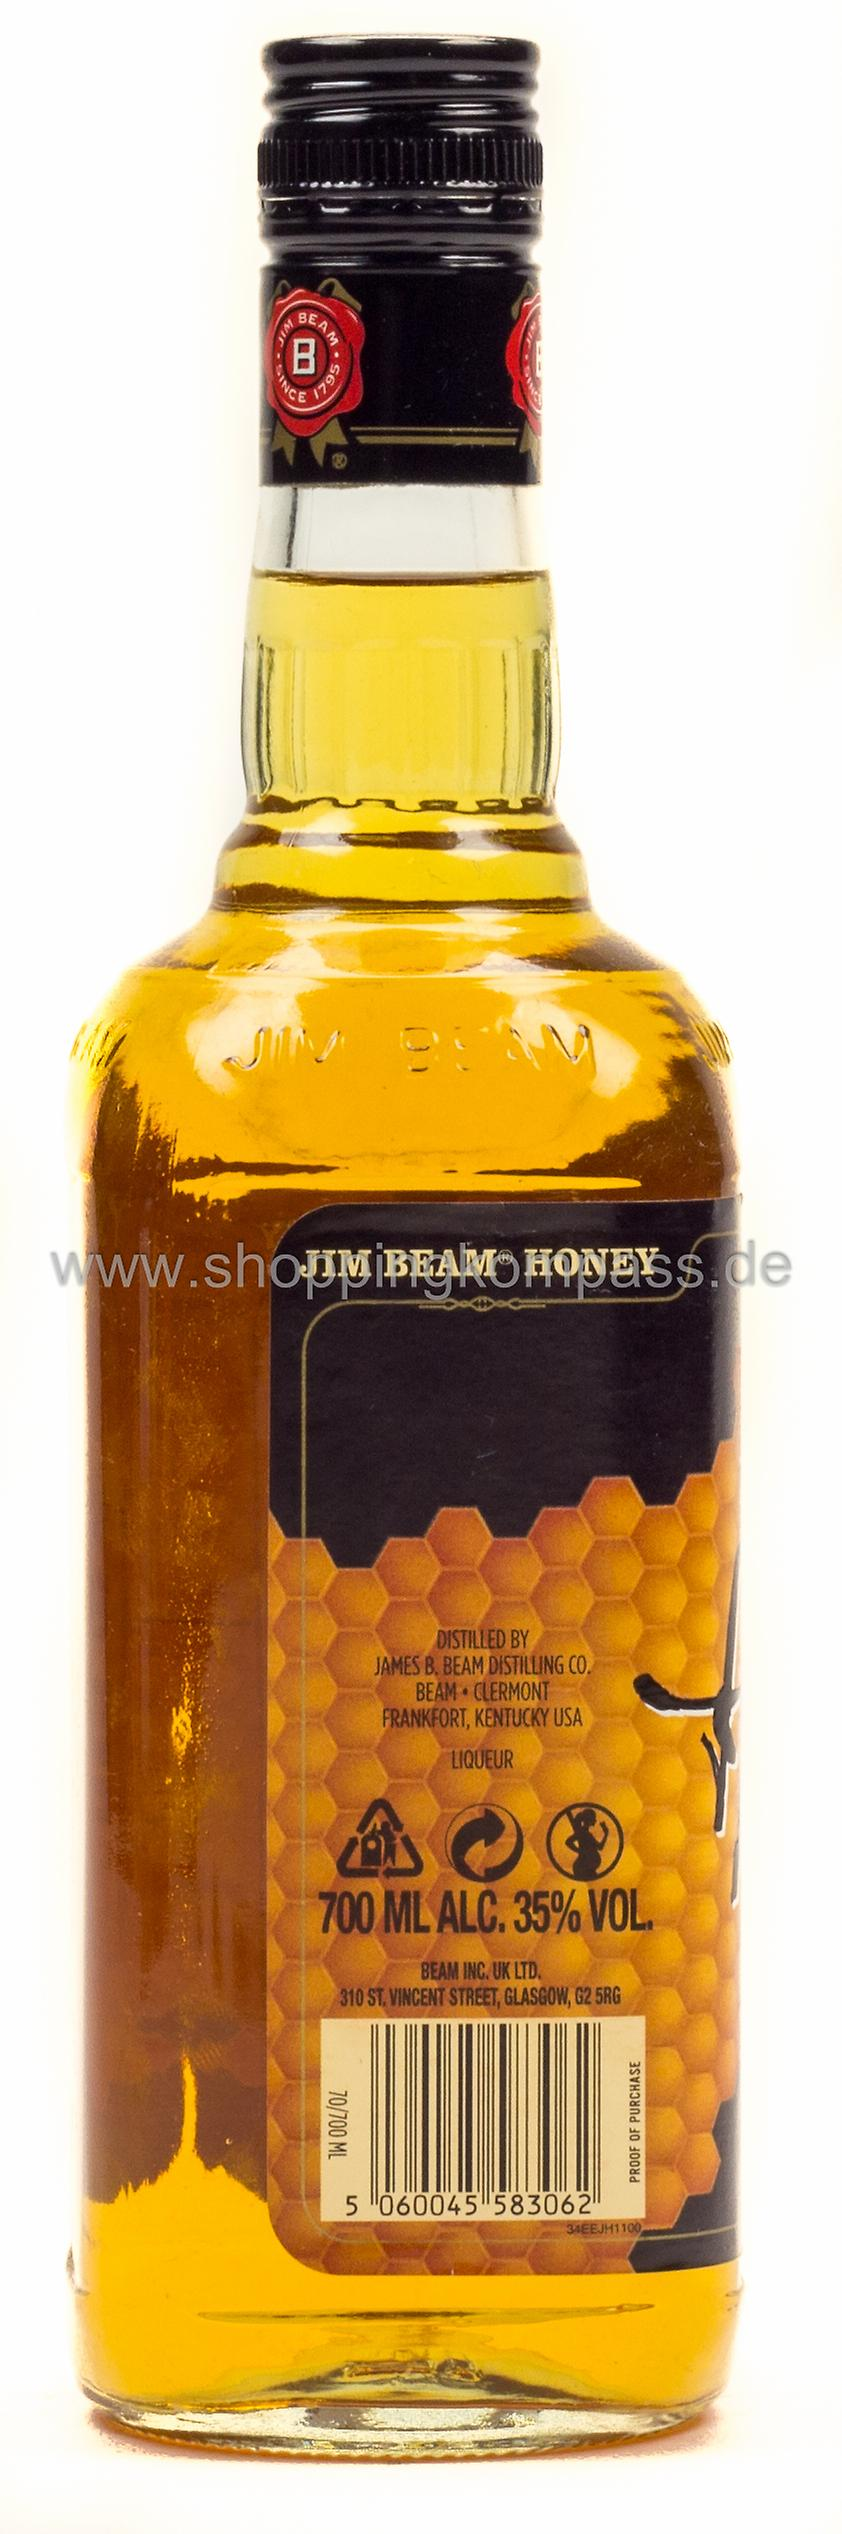 Jim Beam Bourbon Whiskey & Honig 0,7 l Glas